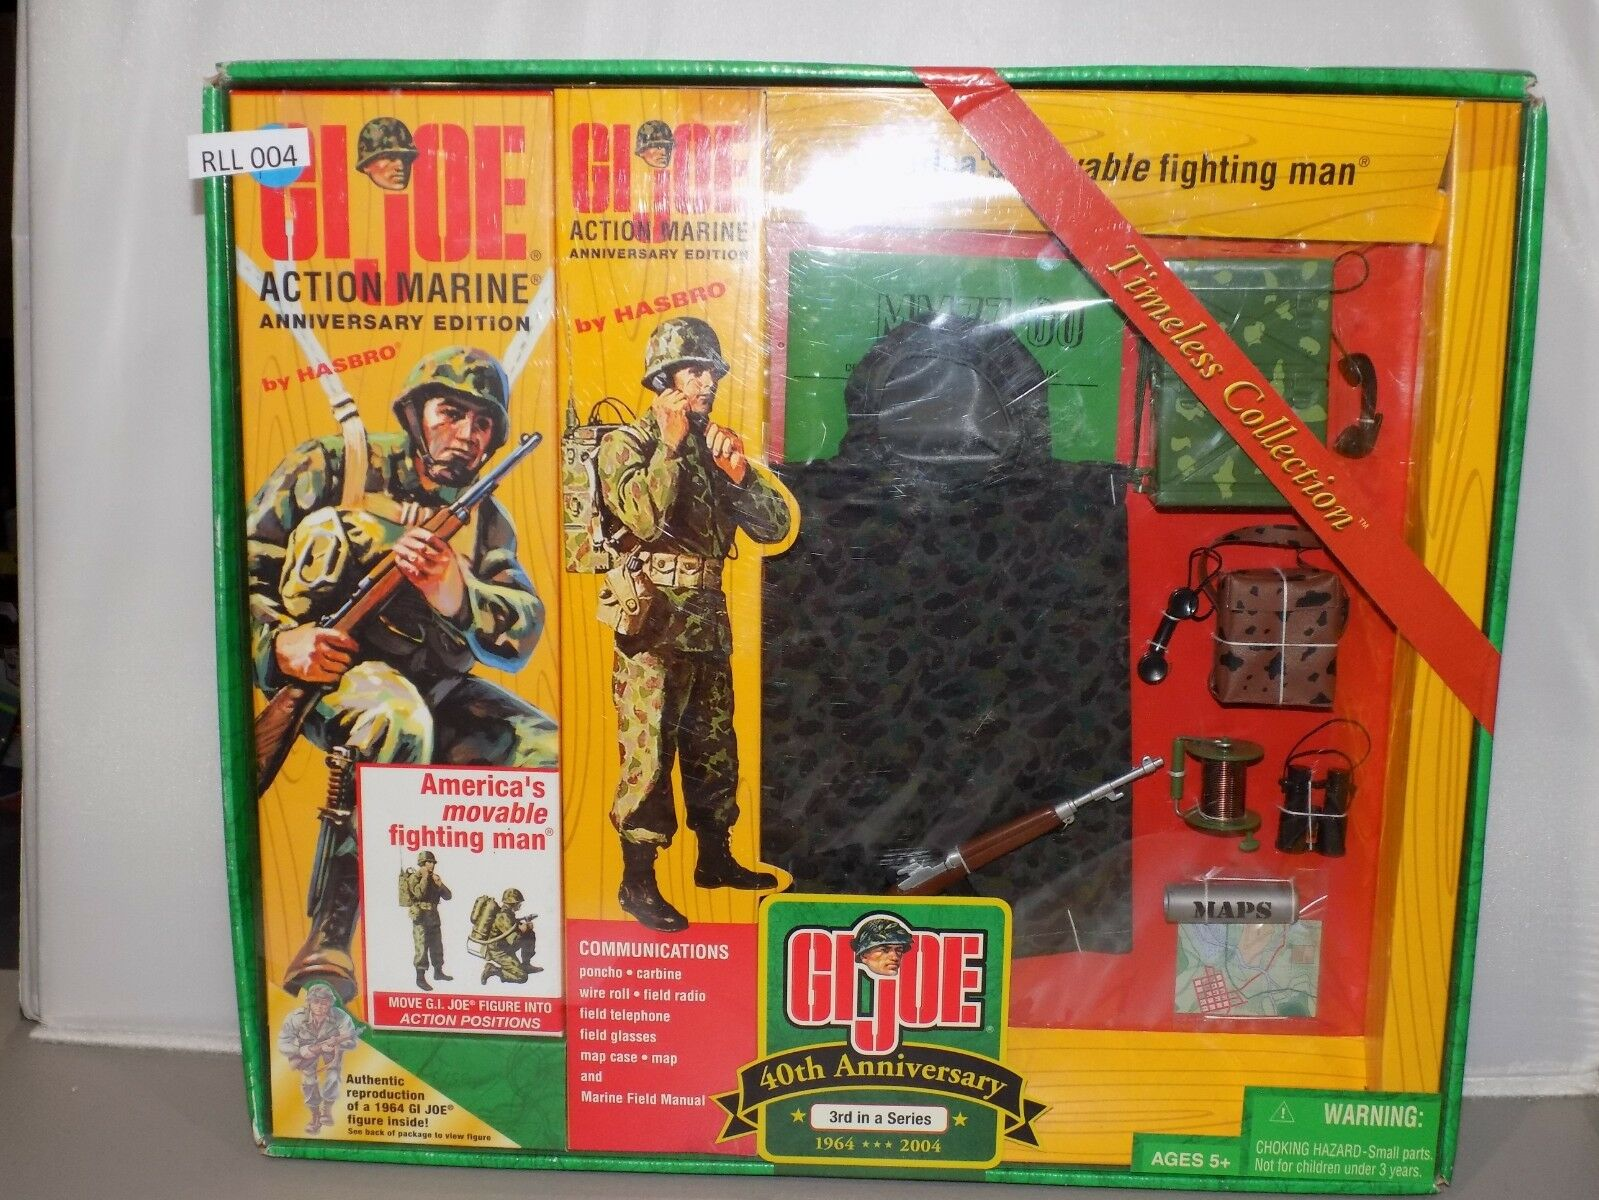 12  G.I. JOE A Battle of the Bulge  Soldier Collection ed NIB (RLL 003)